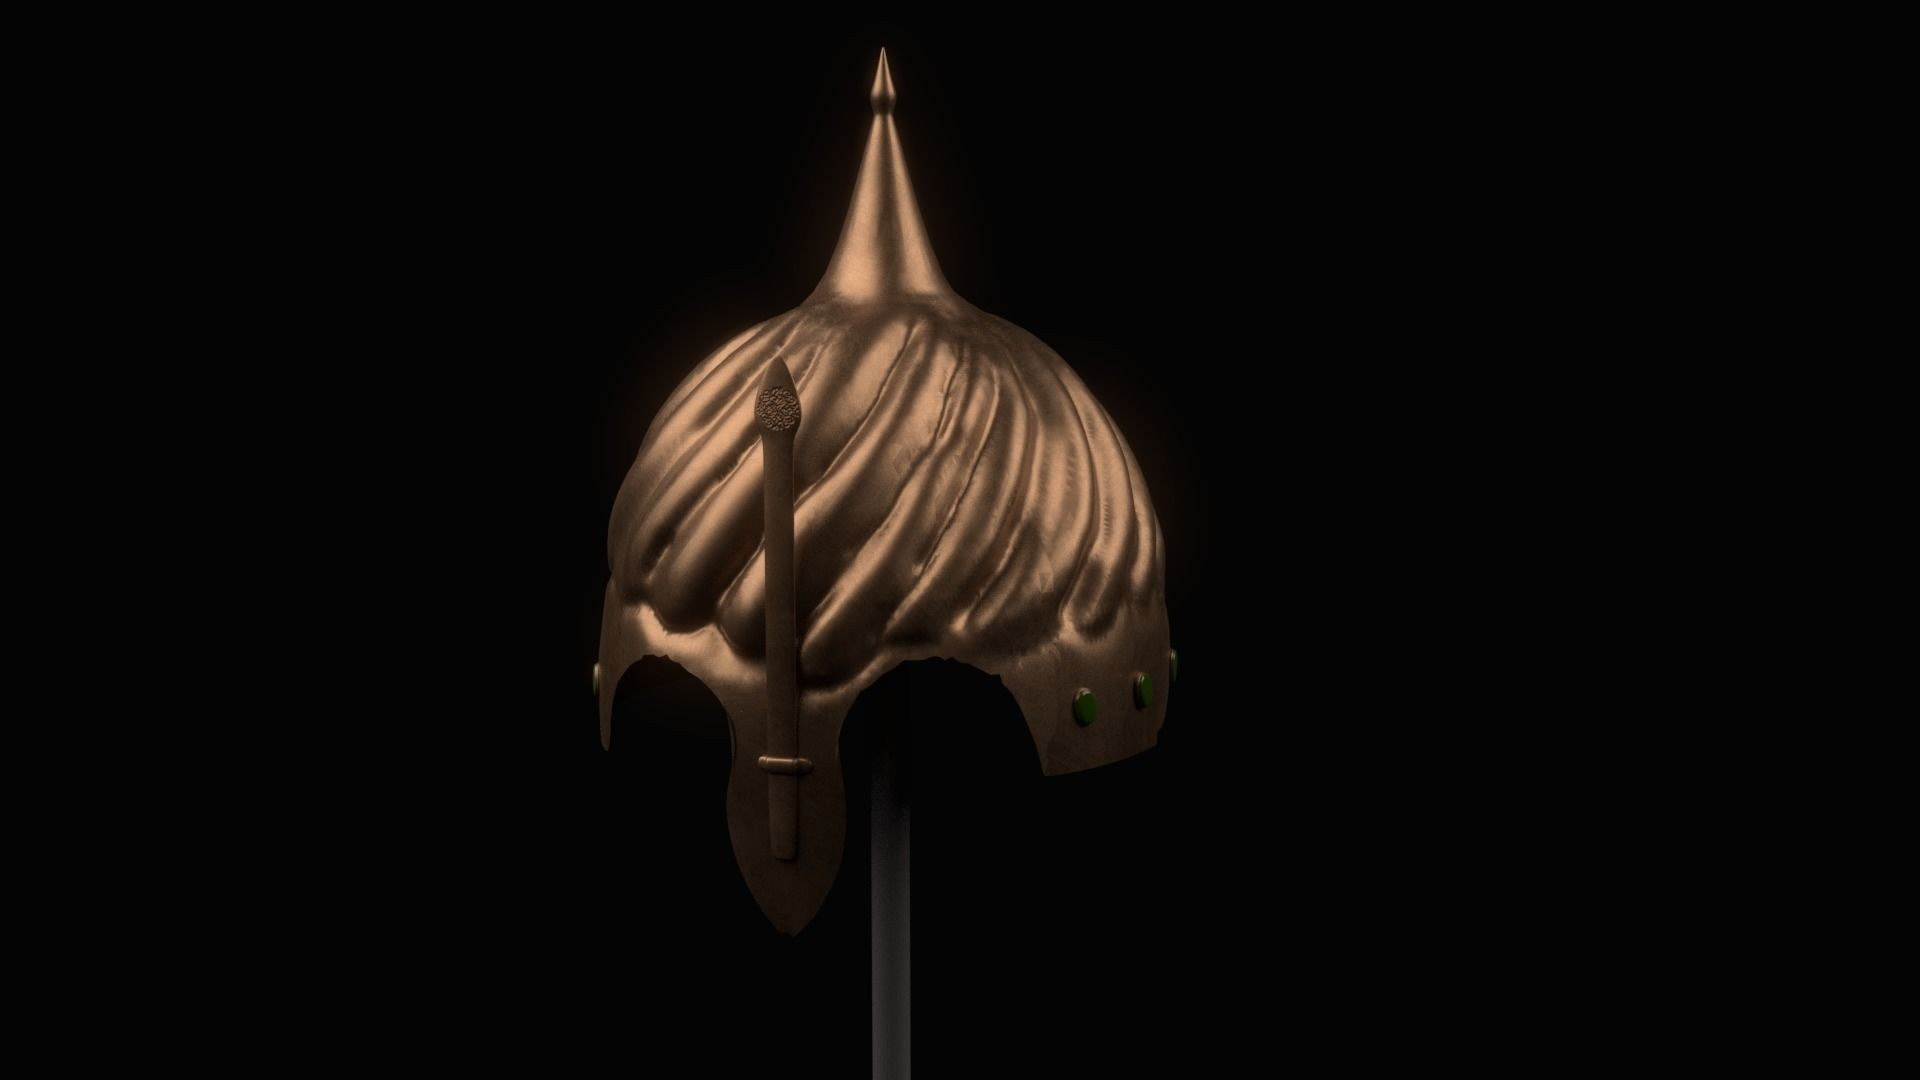 Helmet Of Ottoman Soldier Pbr Low Poly 3d Asset Cgtrader